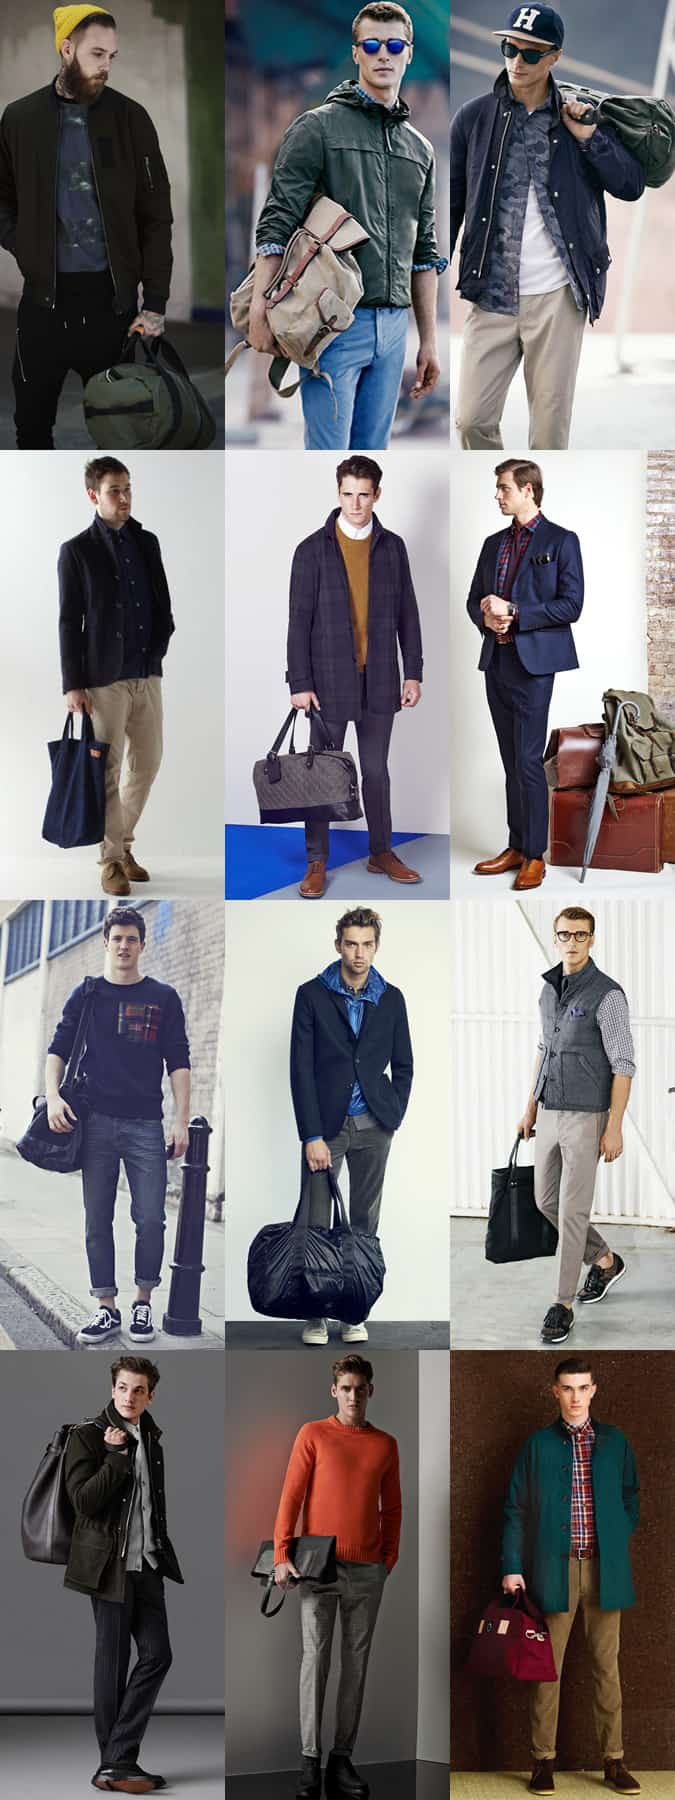 Men's Suede and Canvas Bags - Backpacks, Totes, Holdalls and Duffles - Outfit Inspiration Lookbook